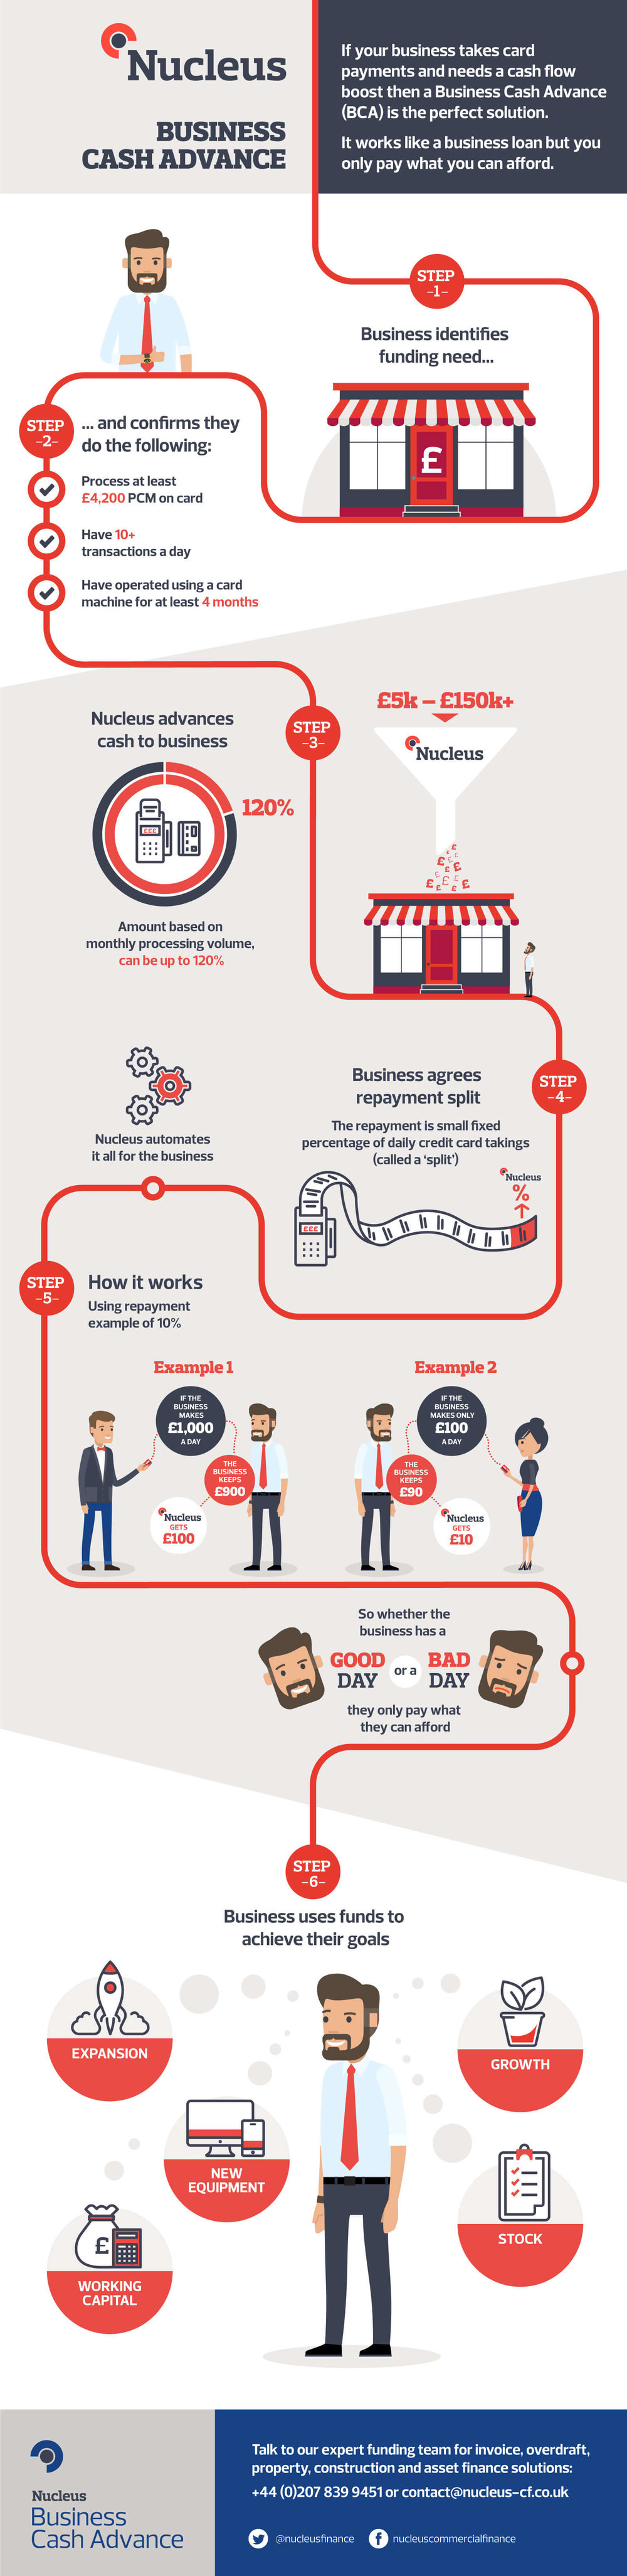 Business-Cash-Advance-infographic_v5.jpg